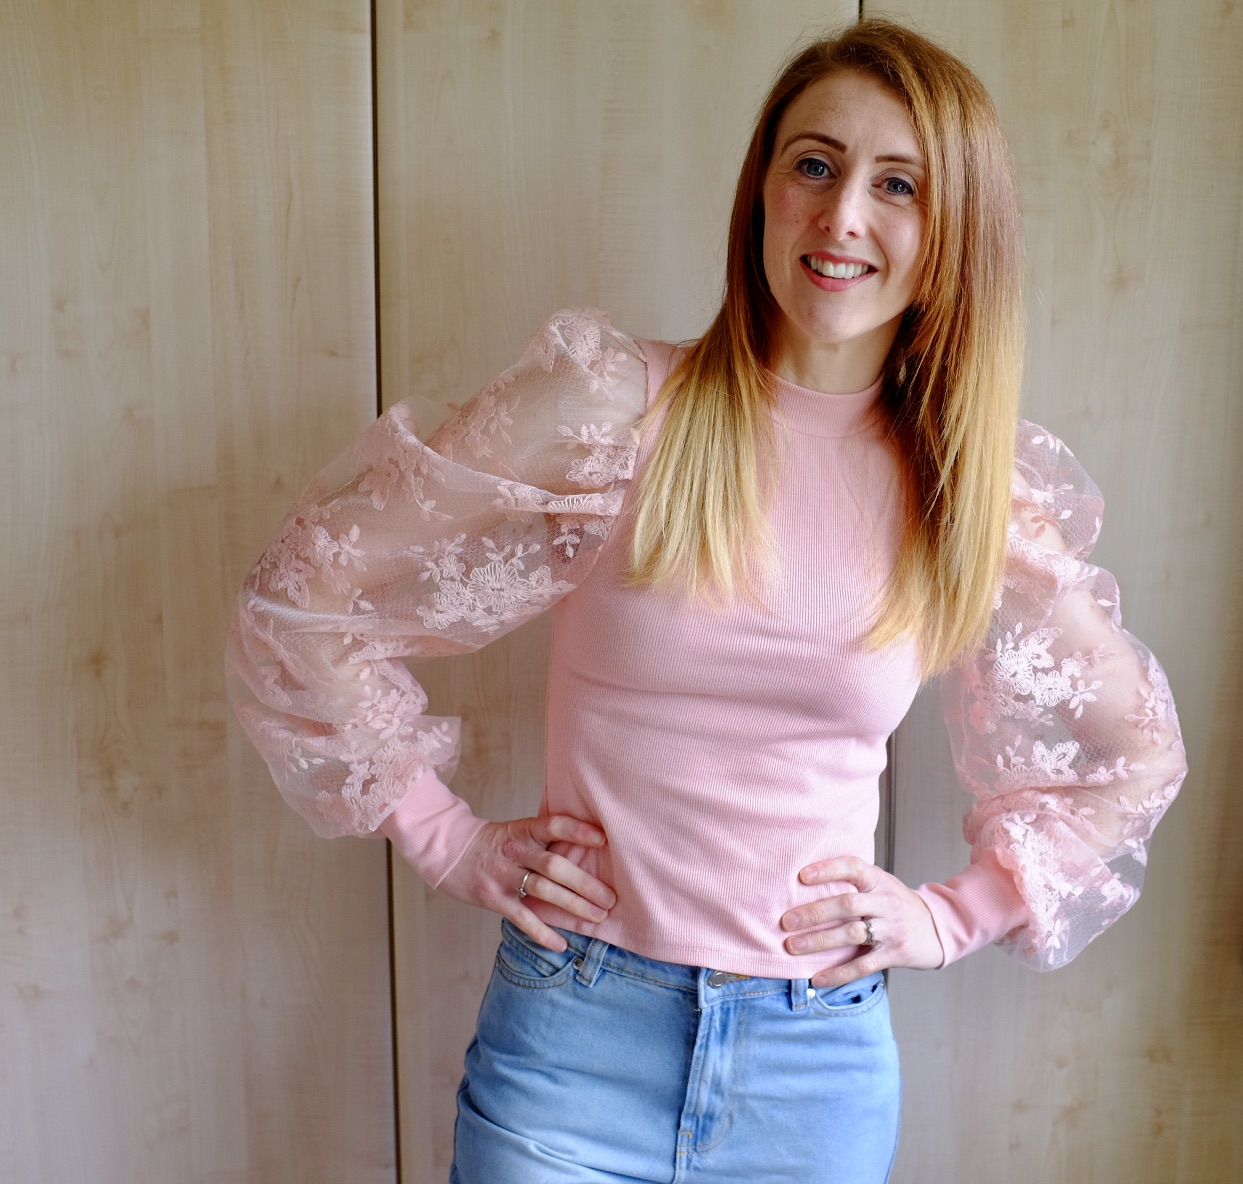 spring fashion - pink puffy sleeved top